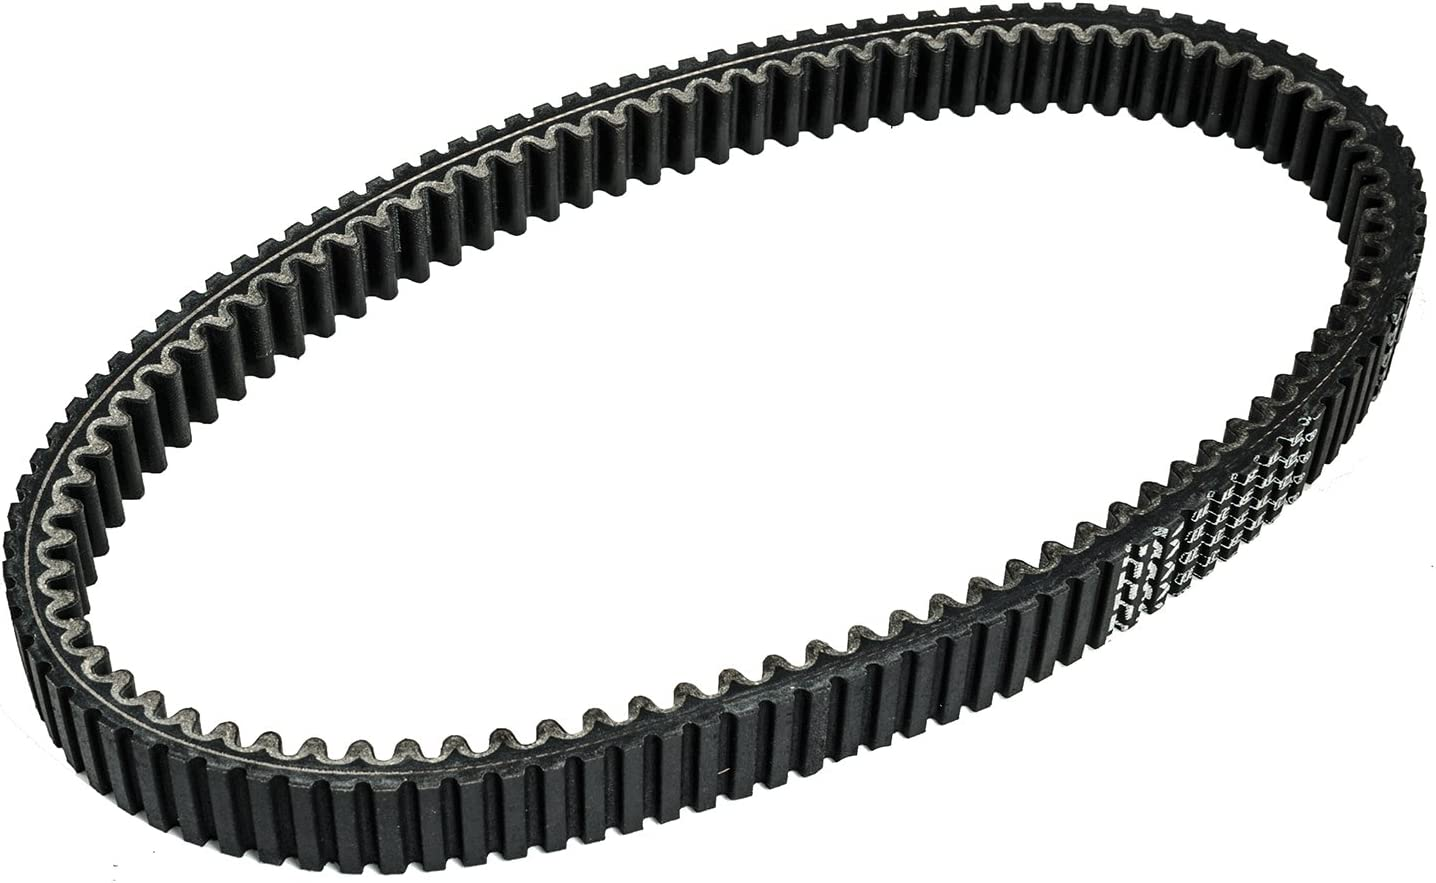 1-Pack AppliaFit Heavy Duty Drive Belt Compatible with Polaris 3211162 3211133 and 3211118 for Polaris Ranger /& RZR